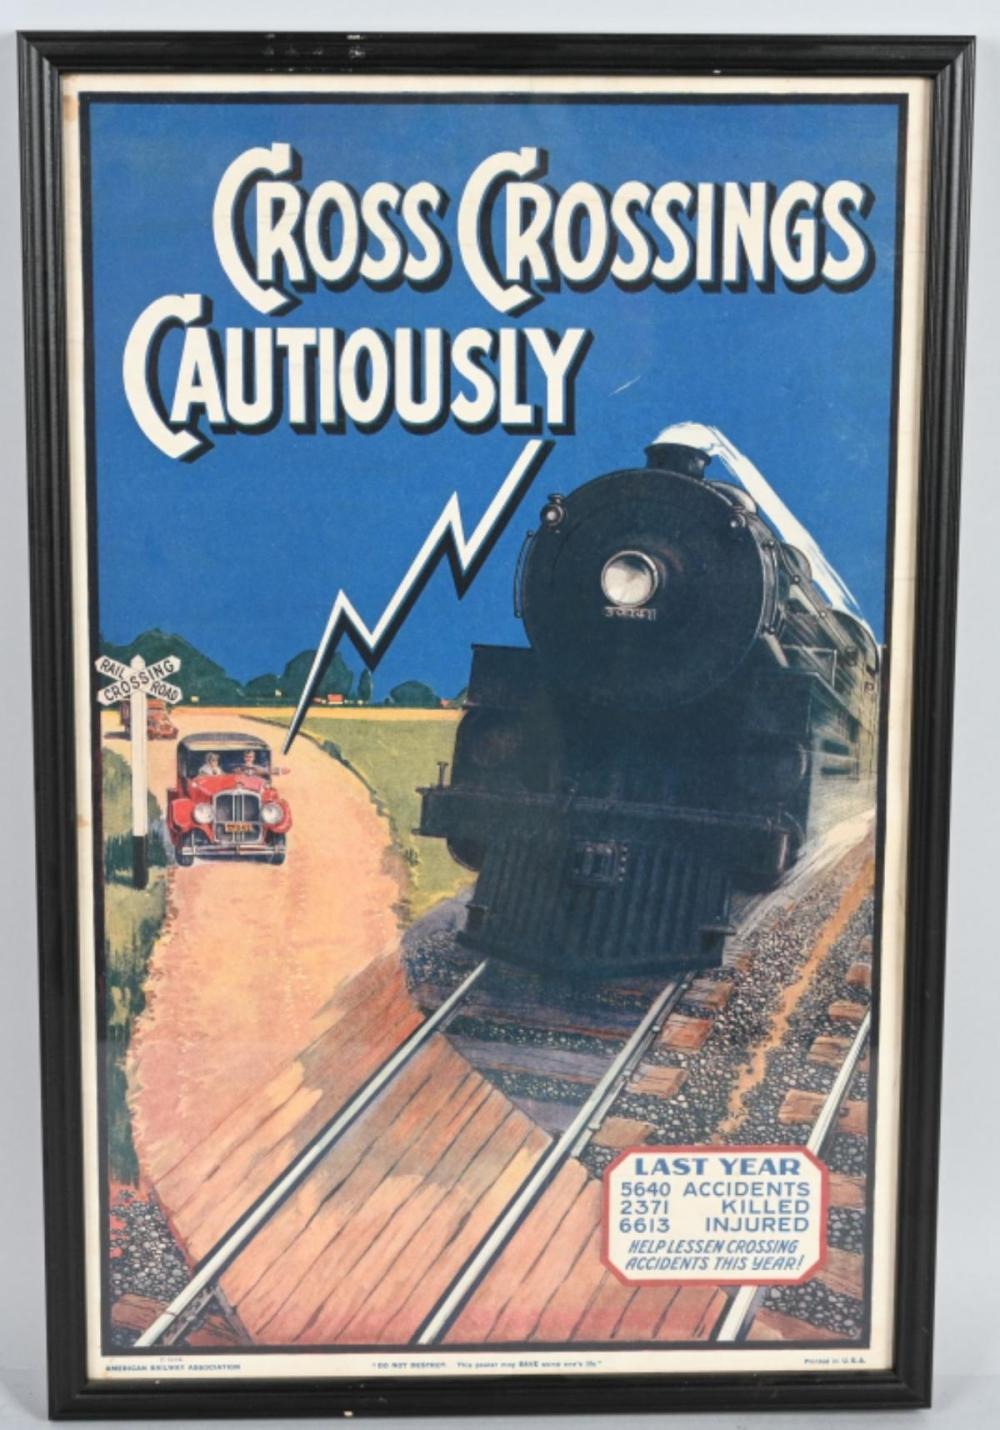 1928 Cross Crossing Cautiously Poster